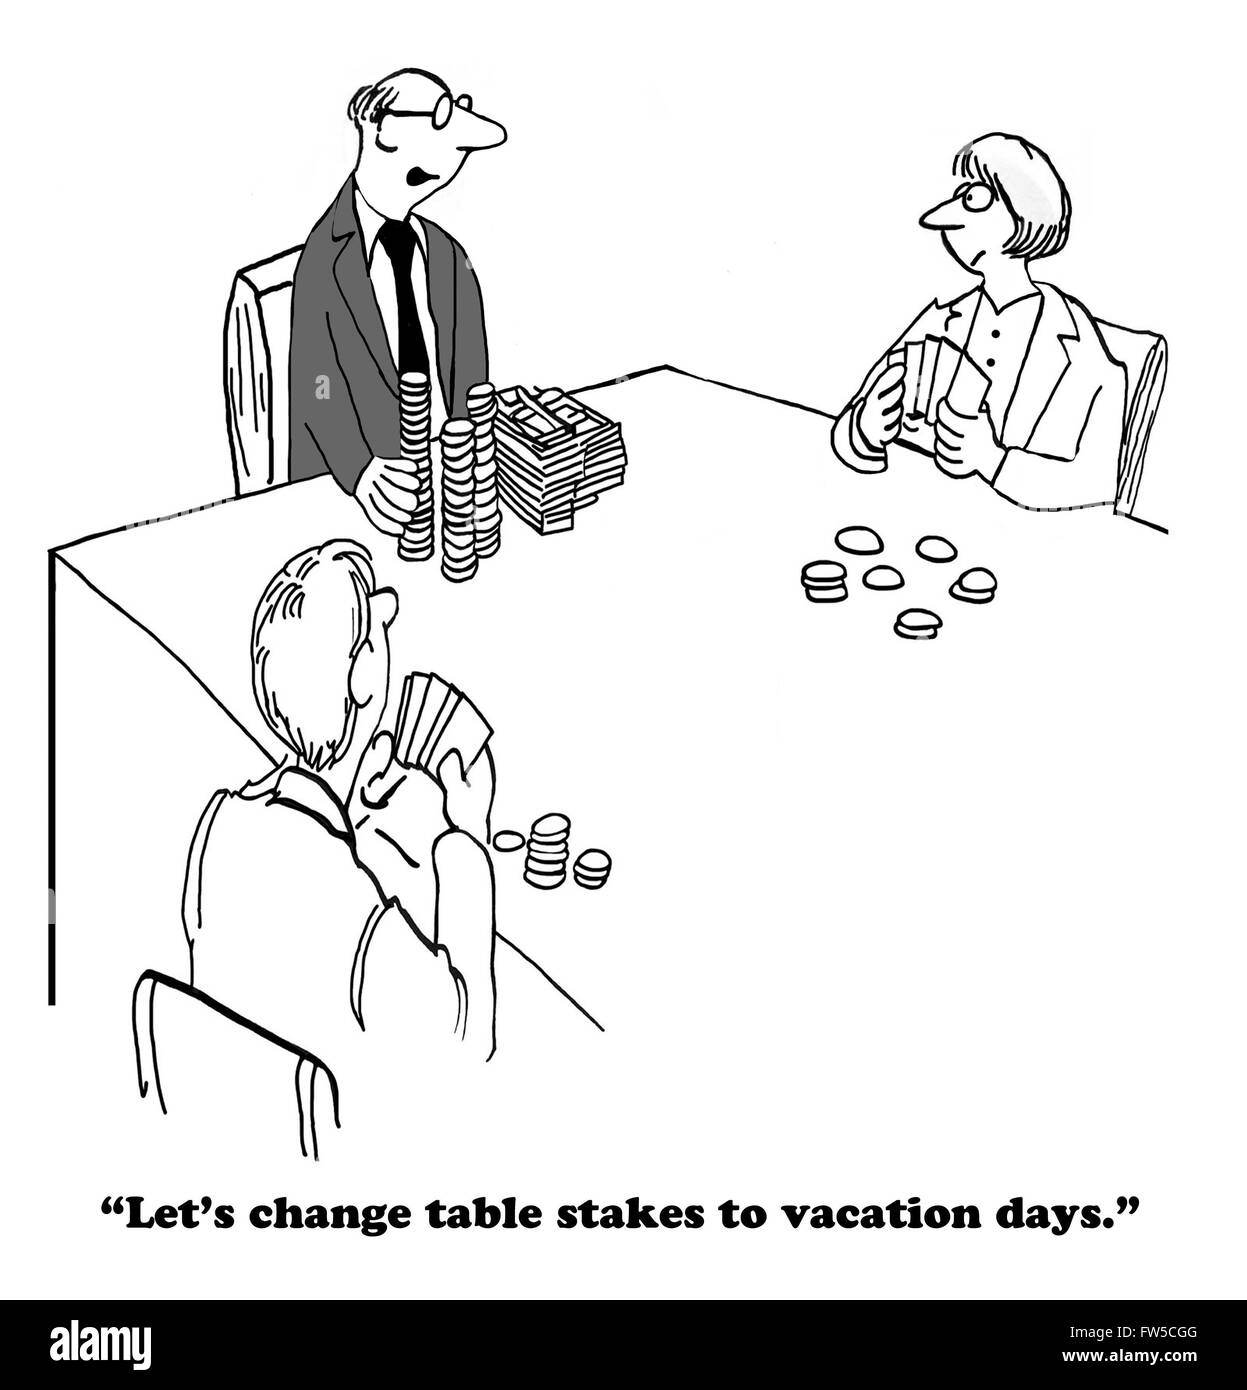 Business cartoon about getting more vacation days. - Stock Image